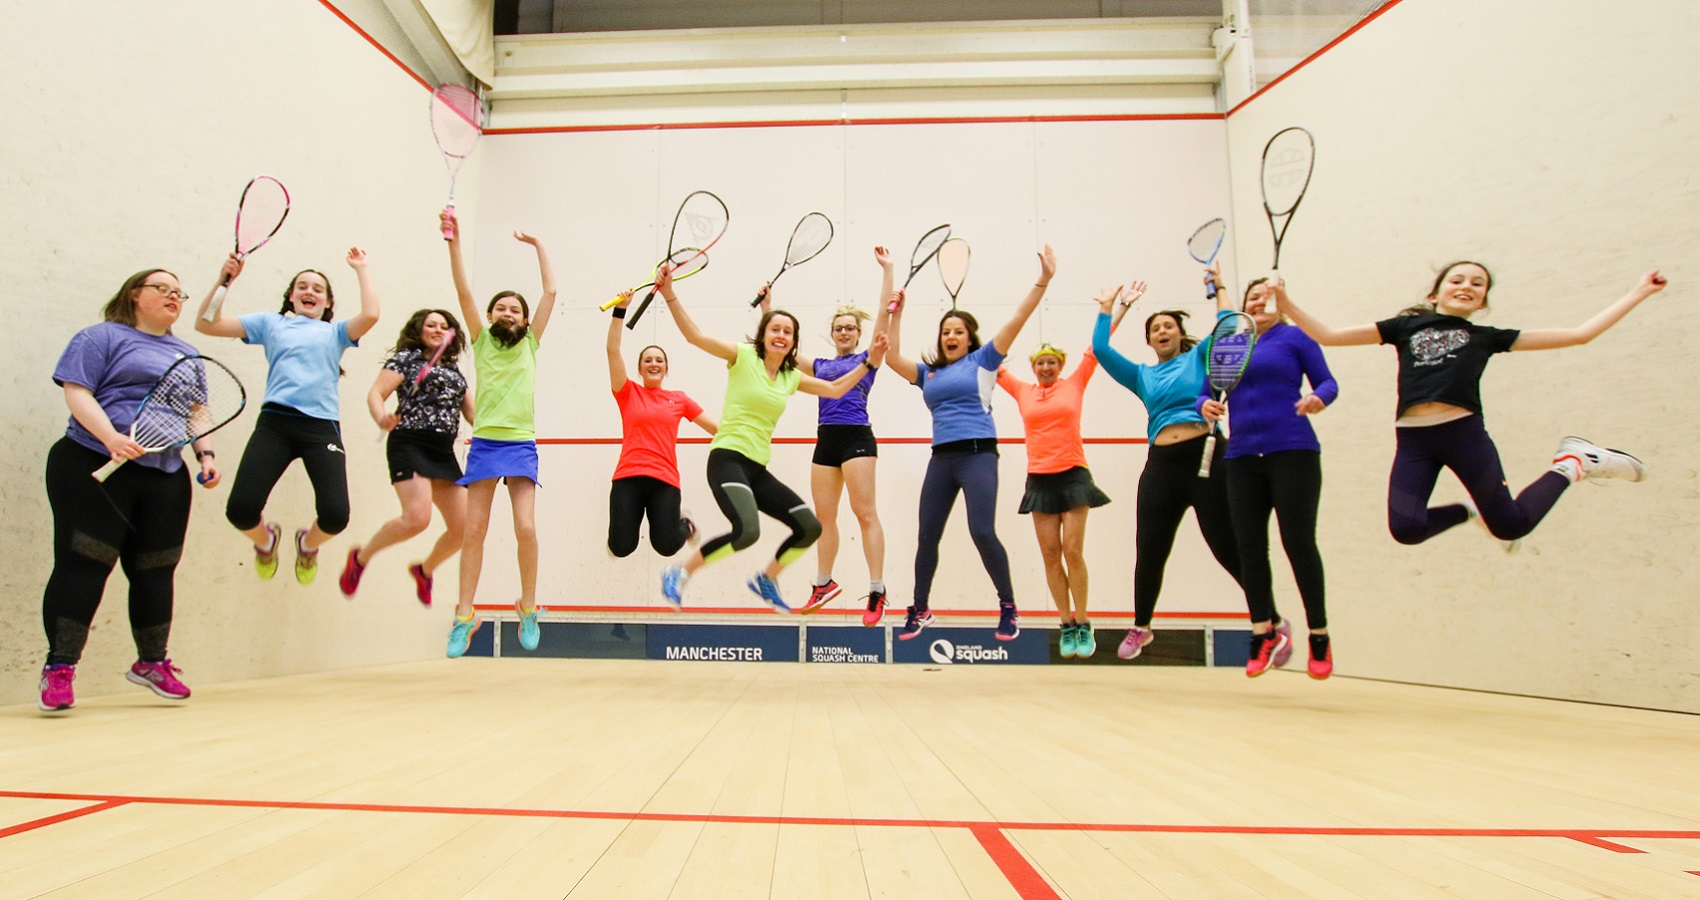 Group of female squash players jumping in the air